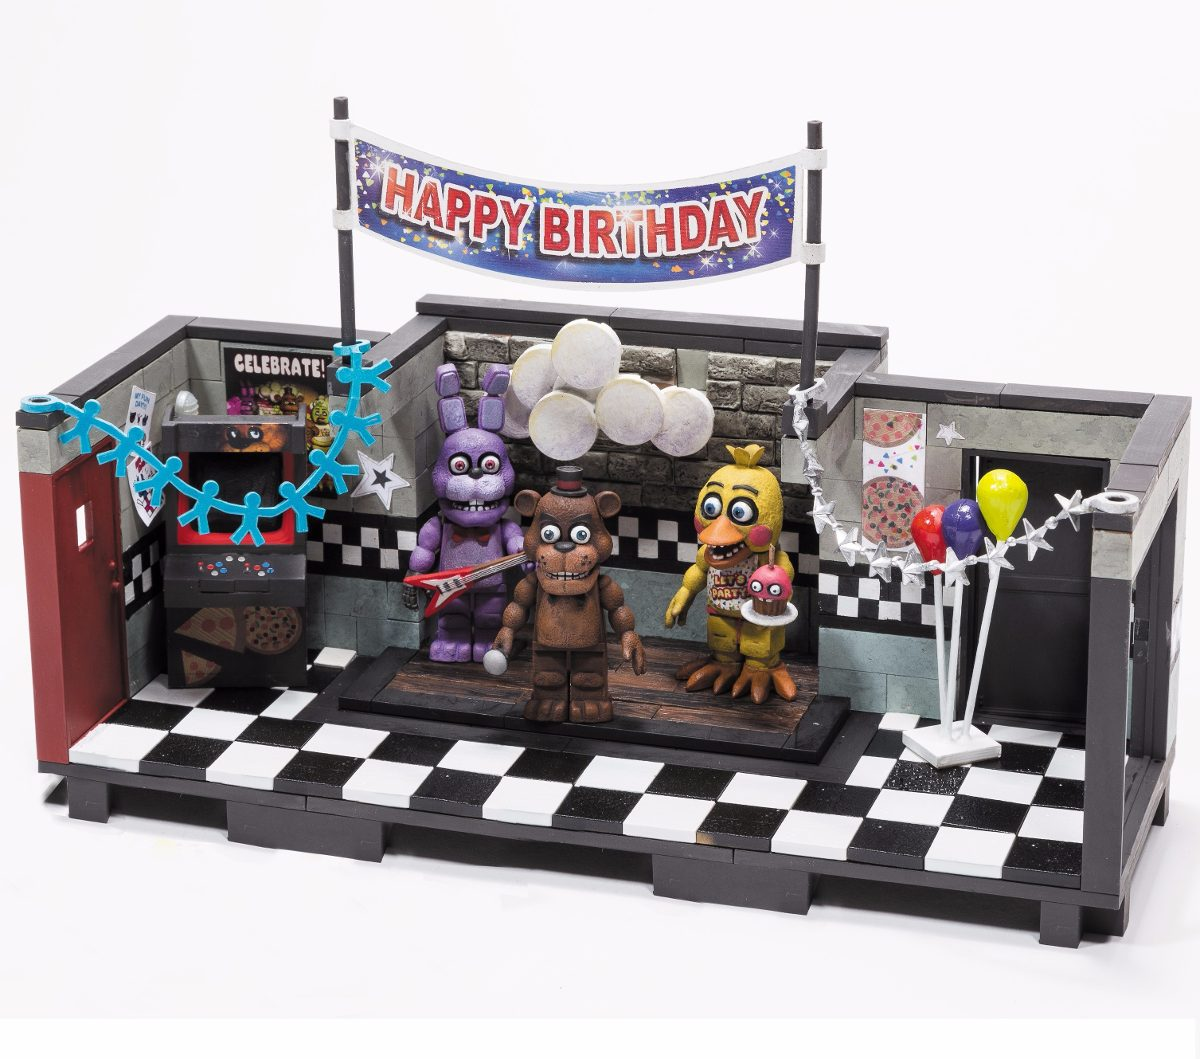 CINQ NIGHTS AT FREDDYS Action Figures 314 pcs